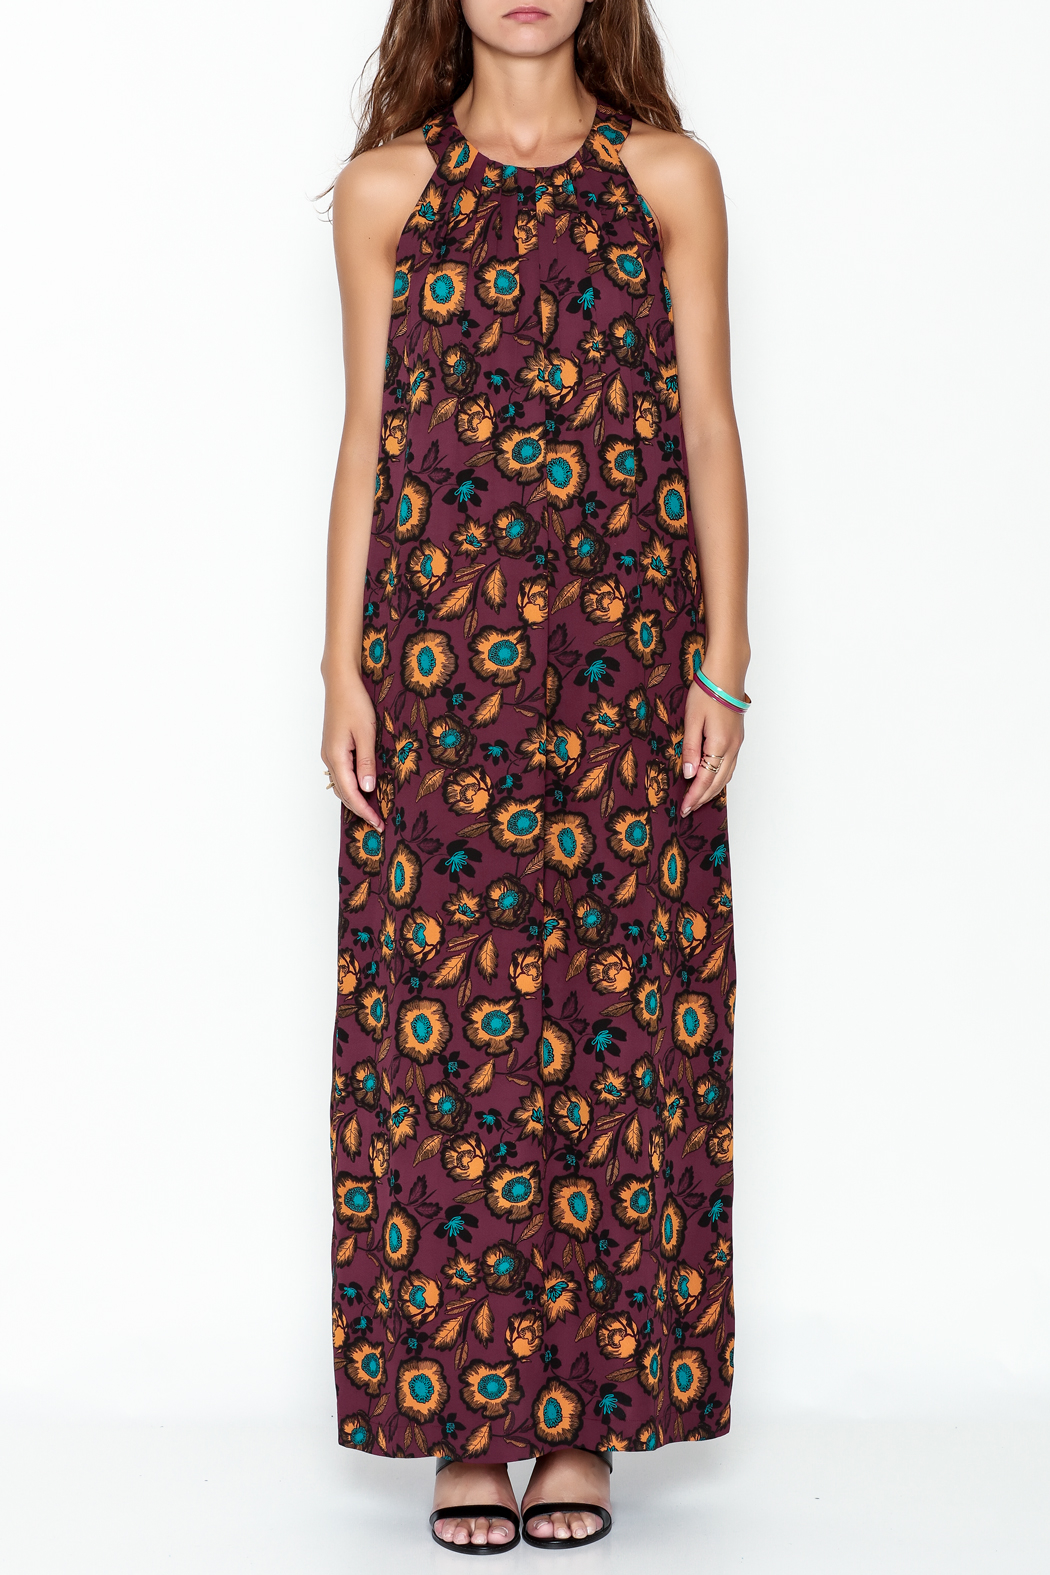 Everly Burgundy Floral Maxi Dress - Front Full Image